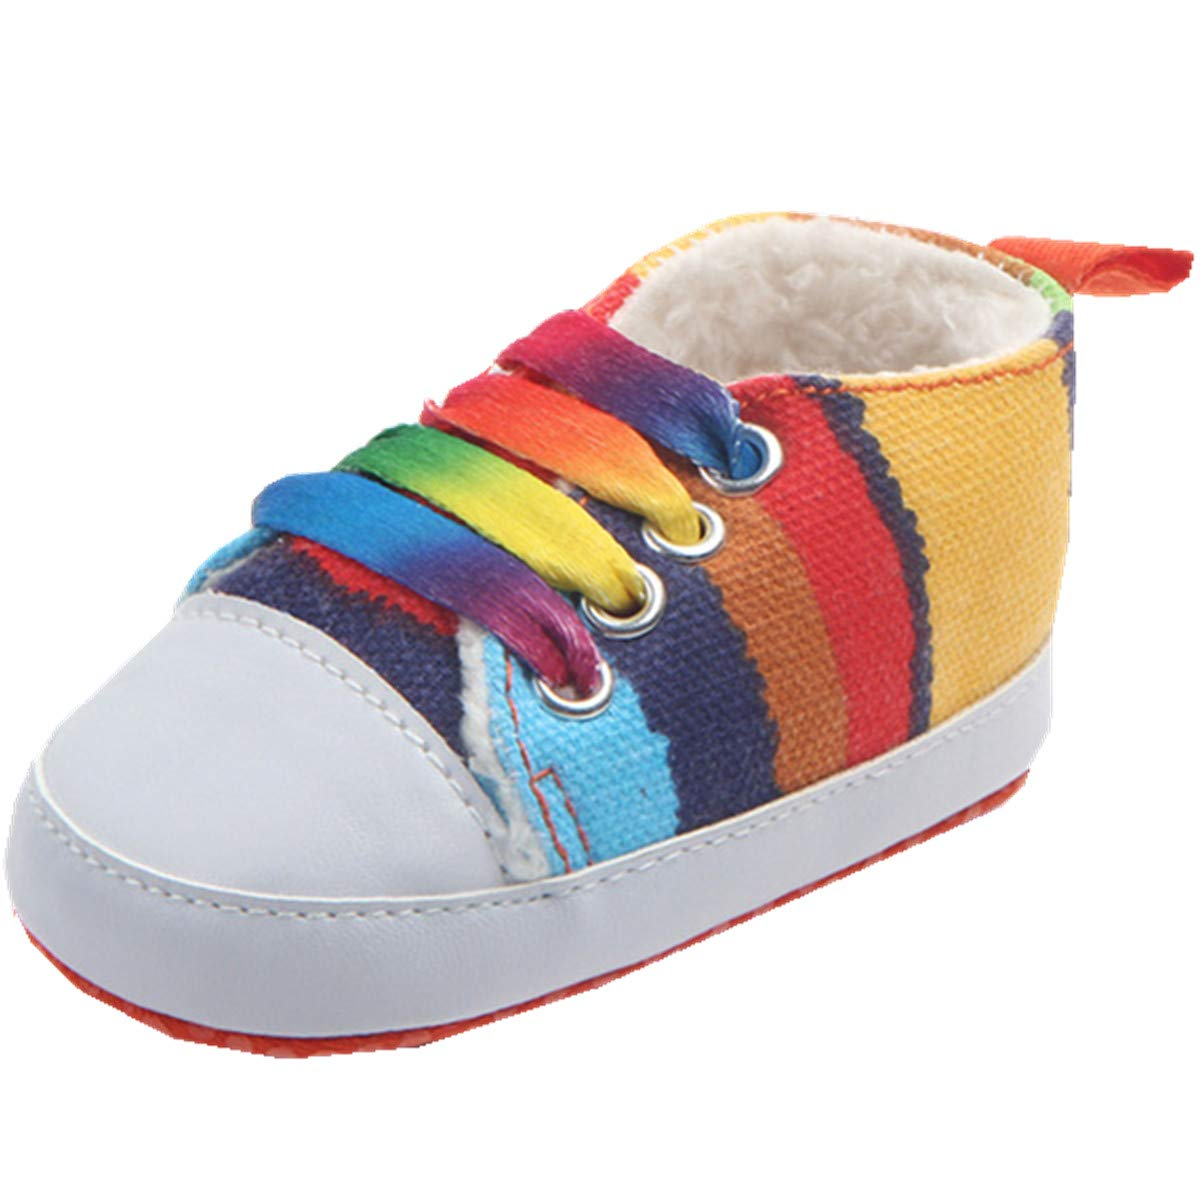 ADIASEN 1pc Winter Wool Warm Baby Unisex Shoes,Cute Baby Girl Snow Boots Shoes,Baby Boys Boots Shoes